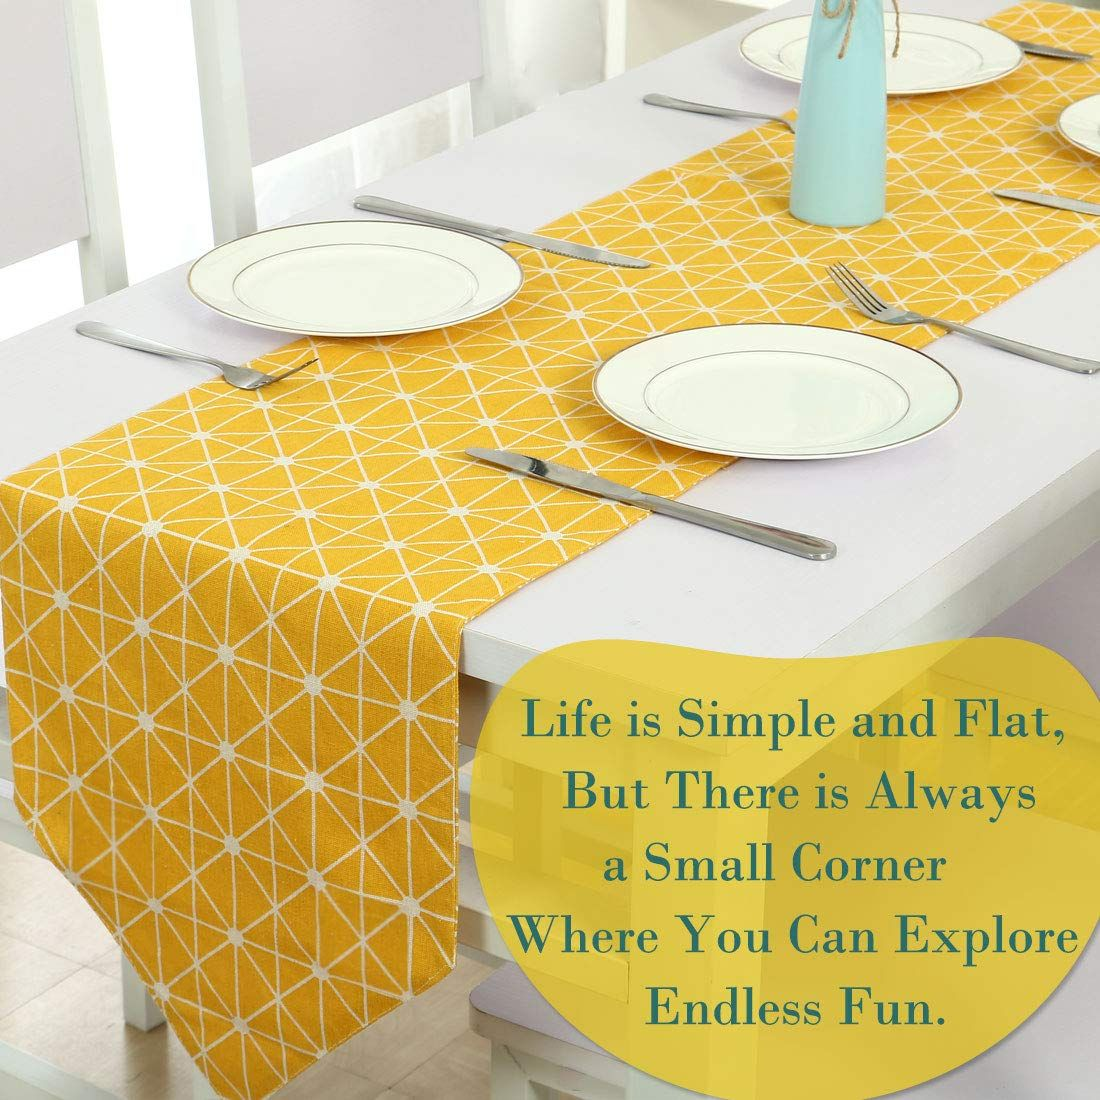 Uxcell Cotton Woven Table Runner Tablecloth 12 X 71 Yellow Furniture Runner Home Wedding Banquet Party Dining R Dining Room Decor Yellow Furniture Home Wedding